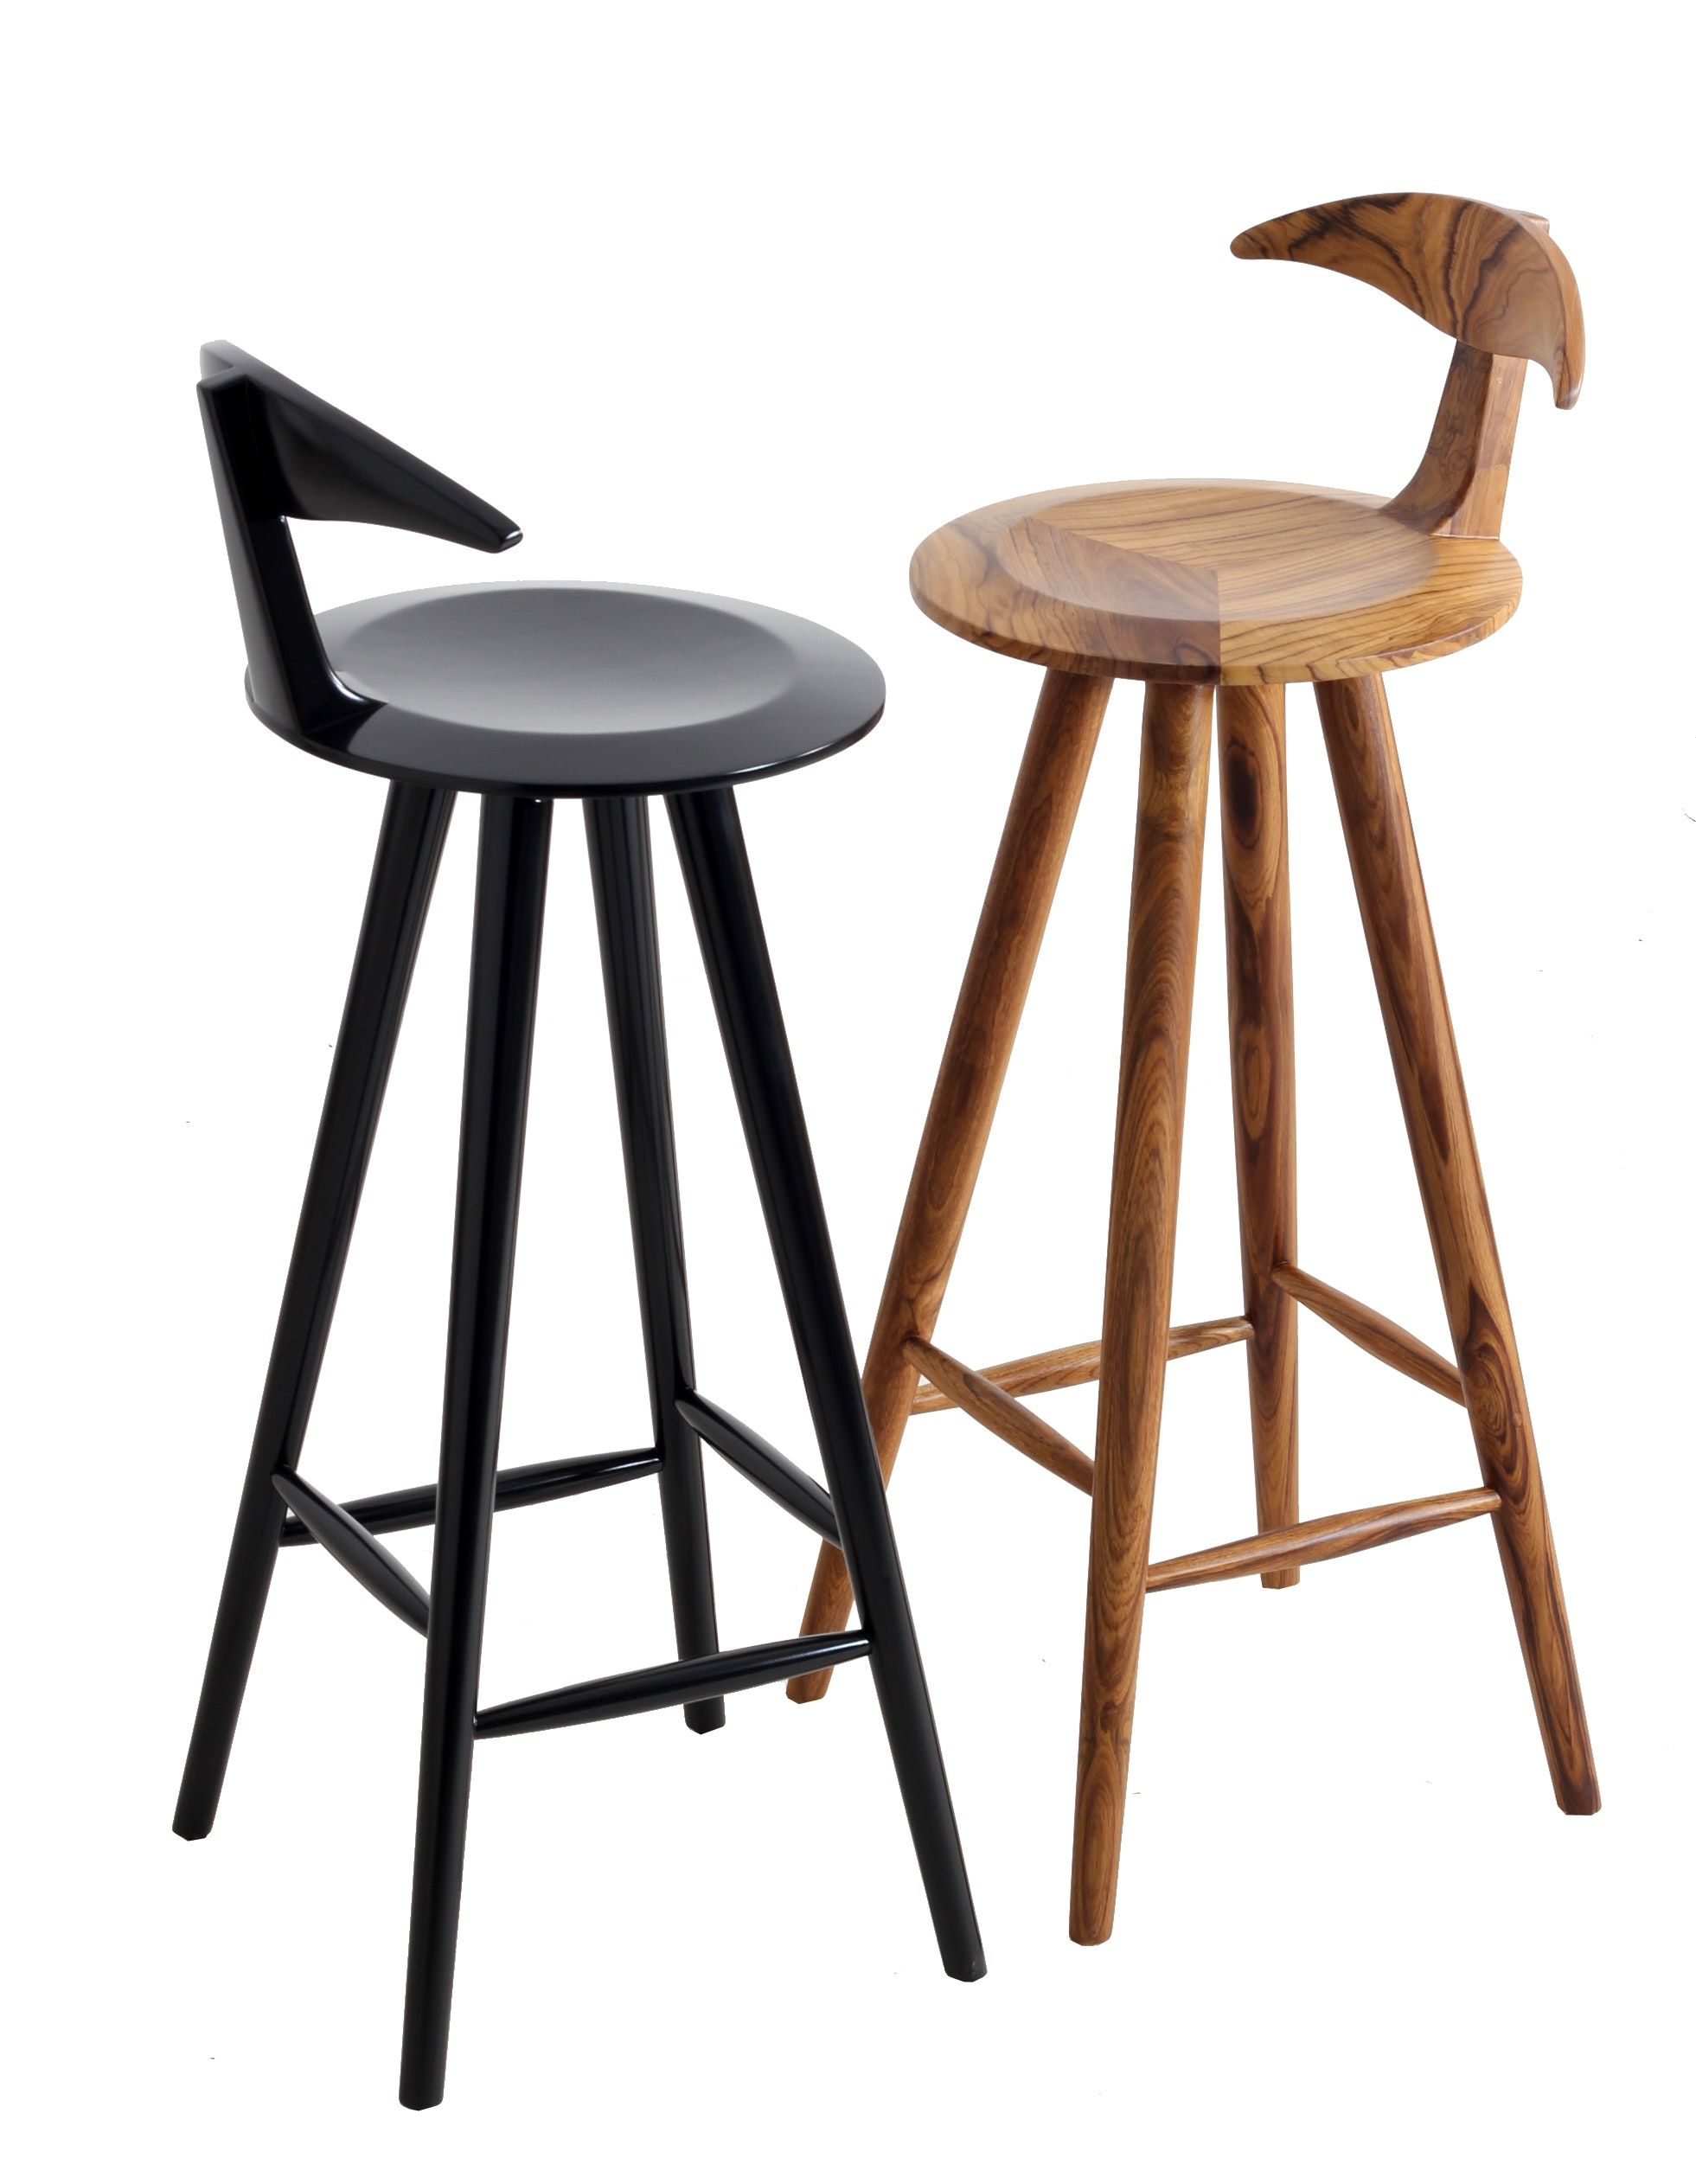 Wood Bar Chairs Udita A Wooden Bar Chair In 2019 Stool Bar Chairs Leather